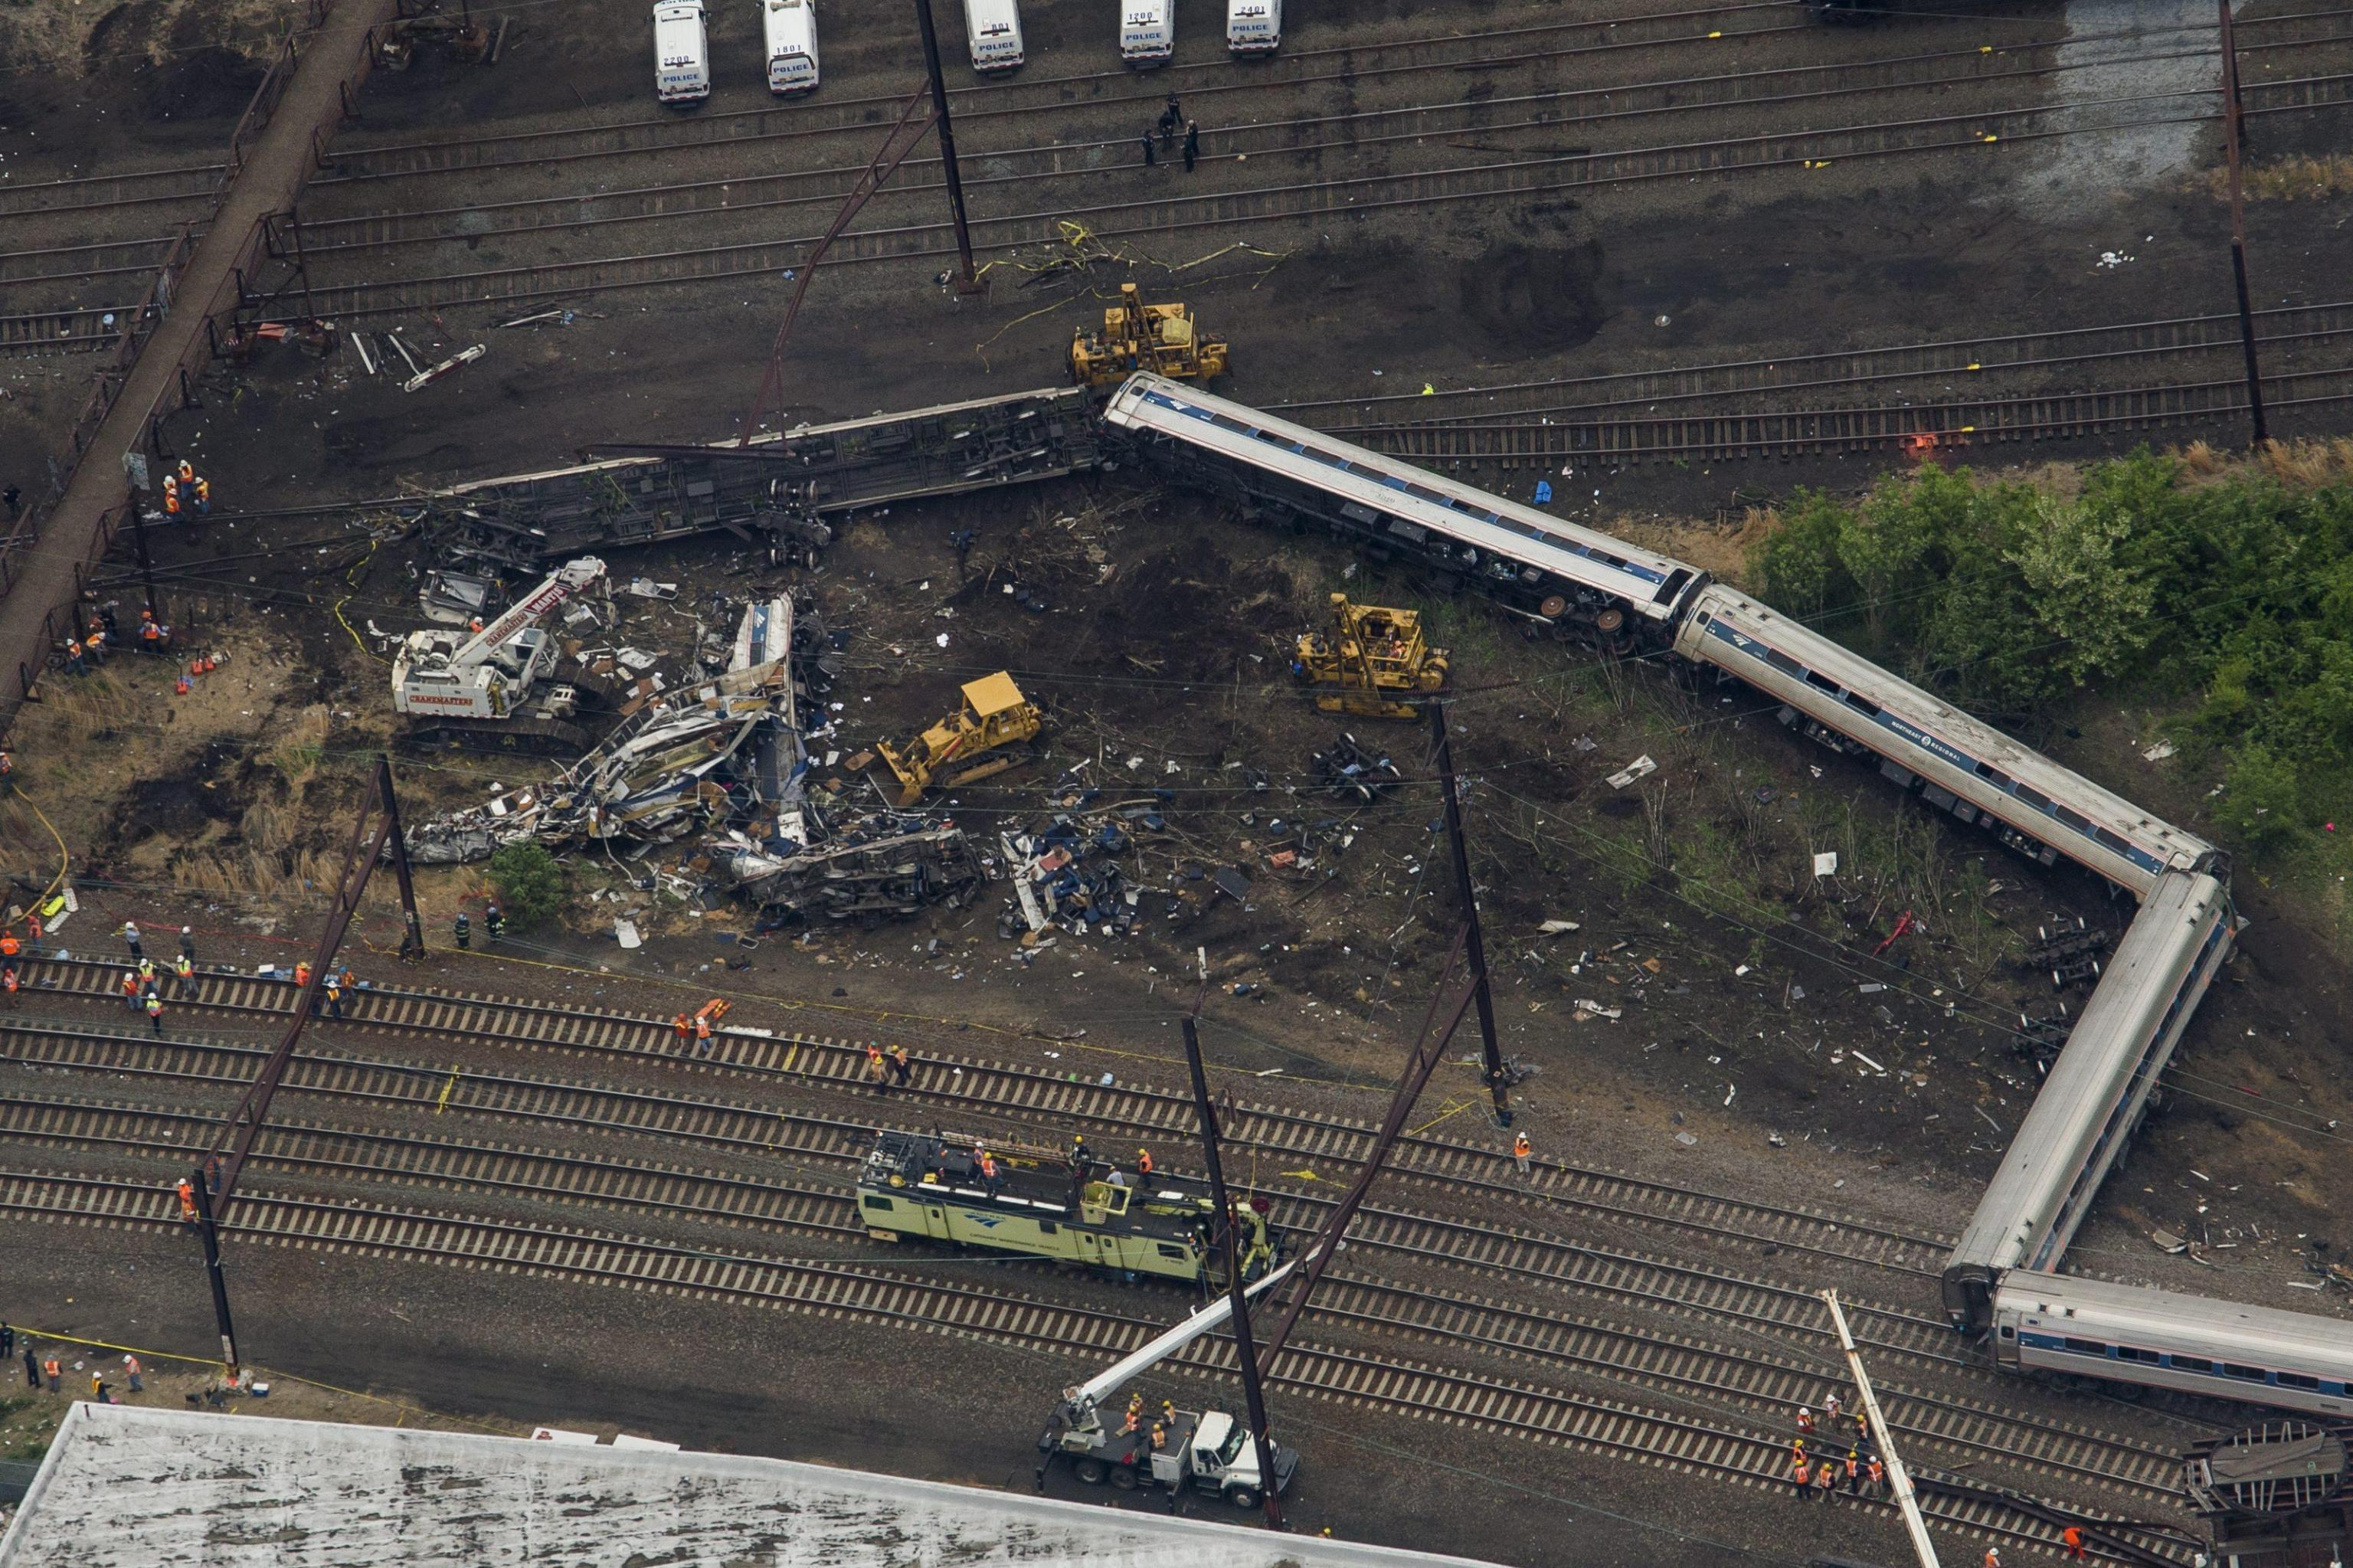 Remains of an Amtrak train that derailed on its way from Washington